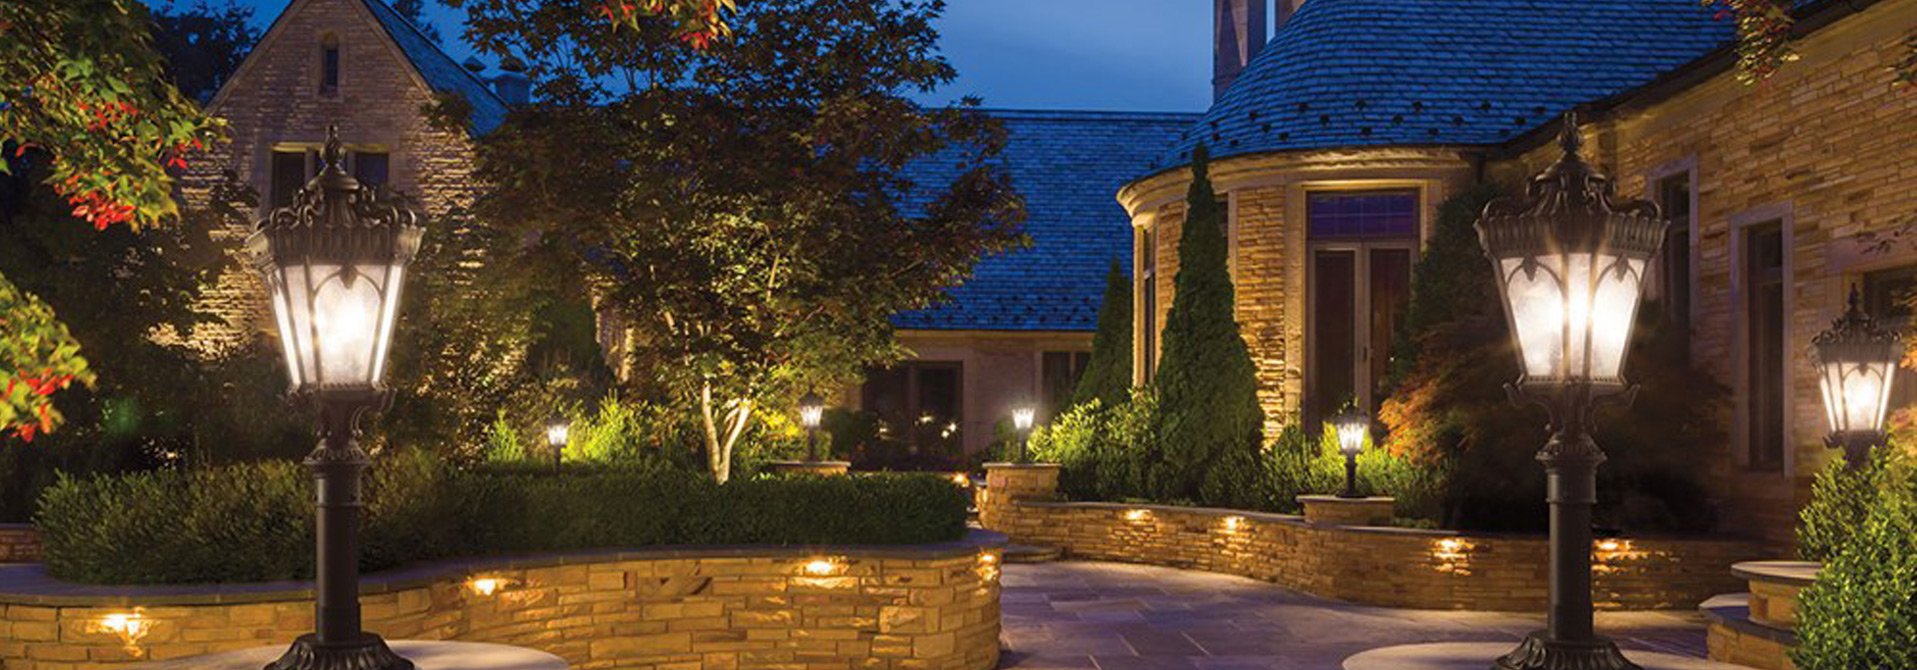 Exterior lighting shop exterior lighting products at our exterior workwithnaturefo